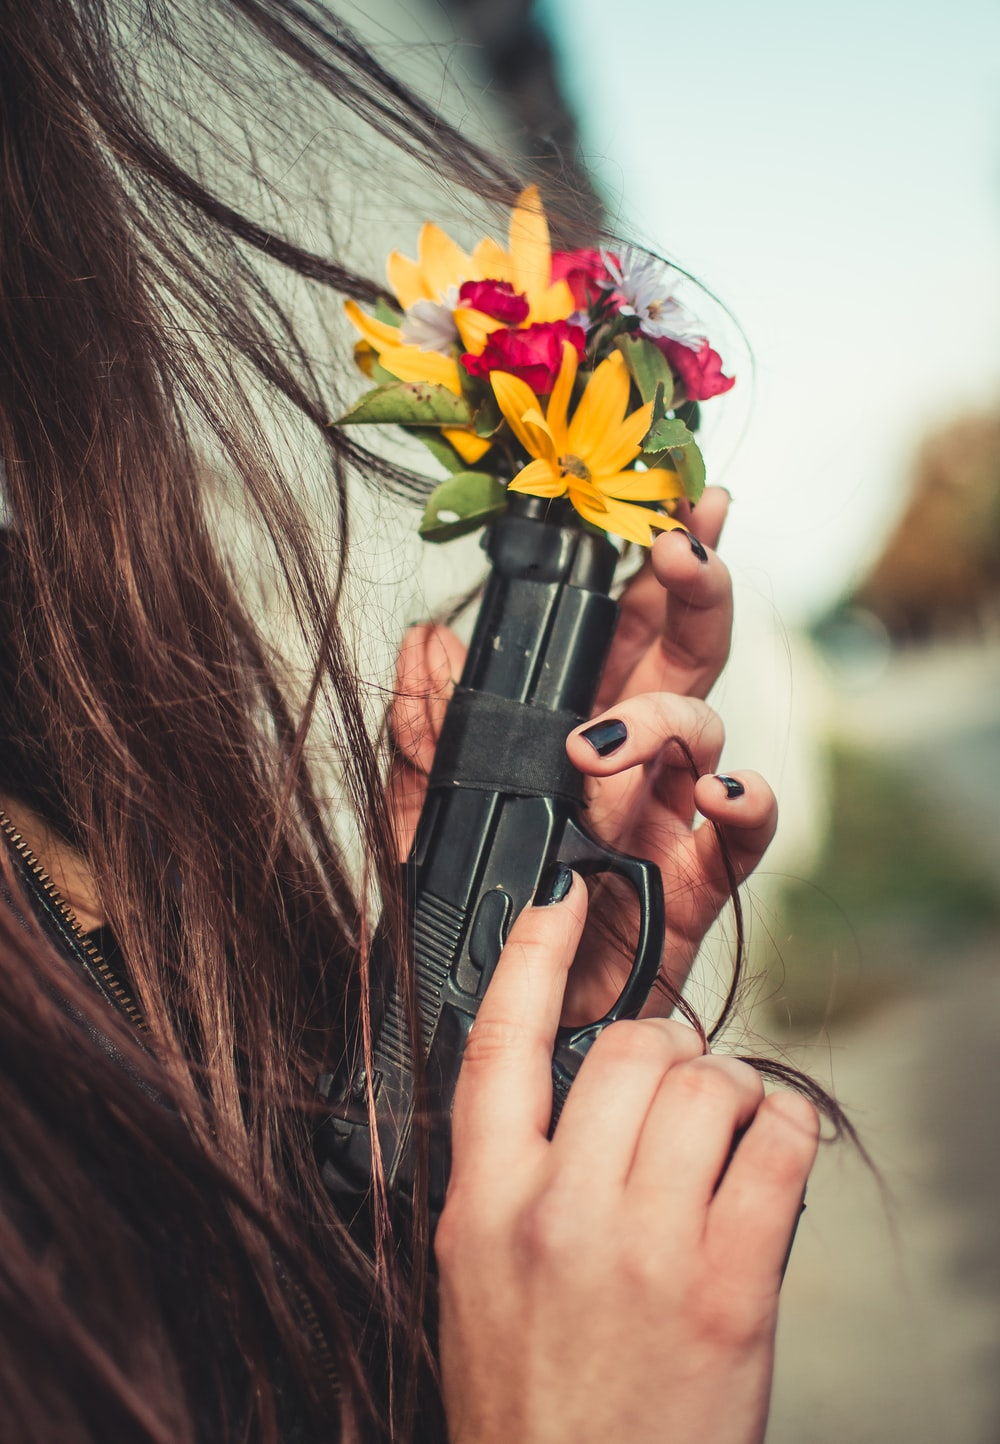 person holding automatic pistol with multicolored flowers on tip